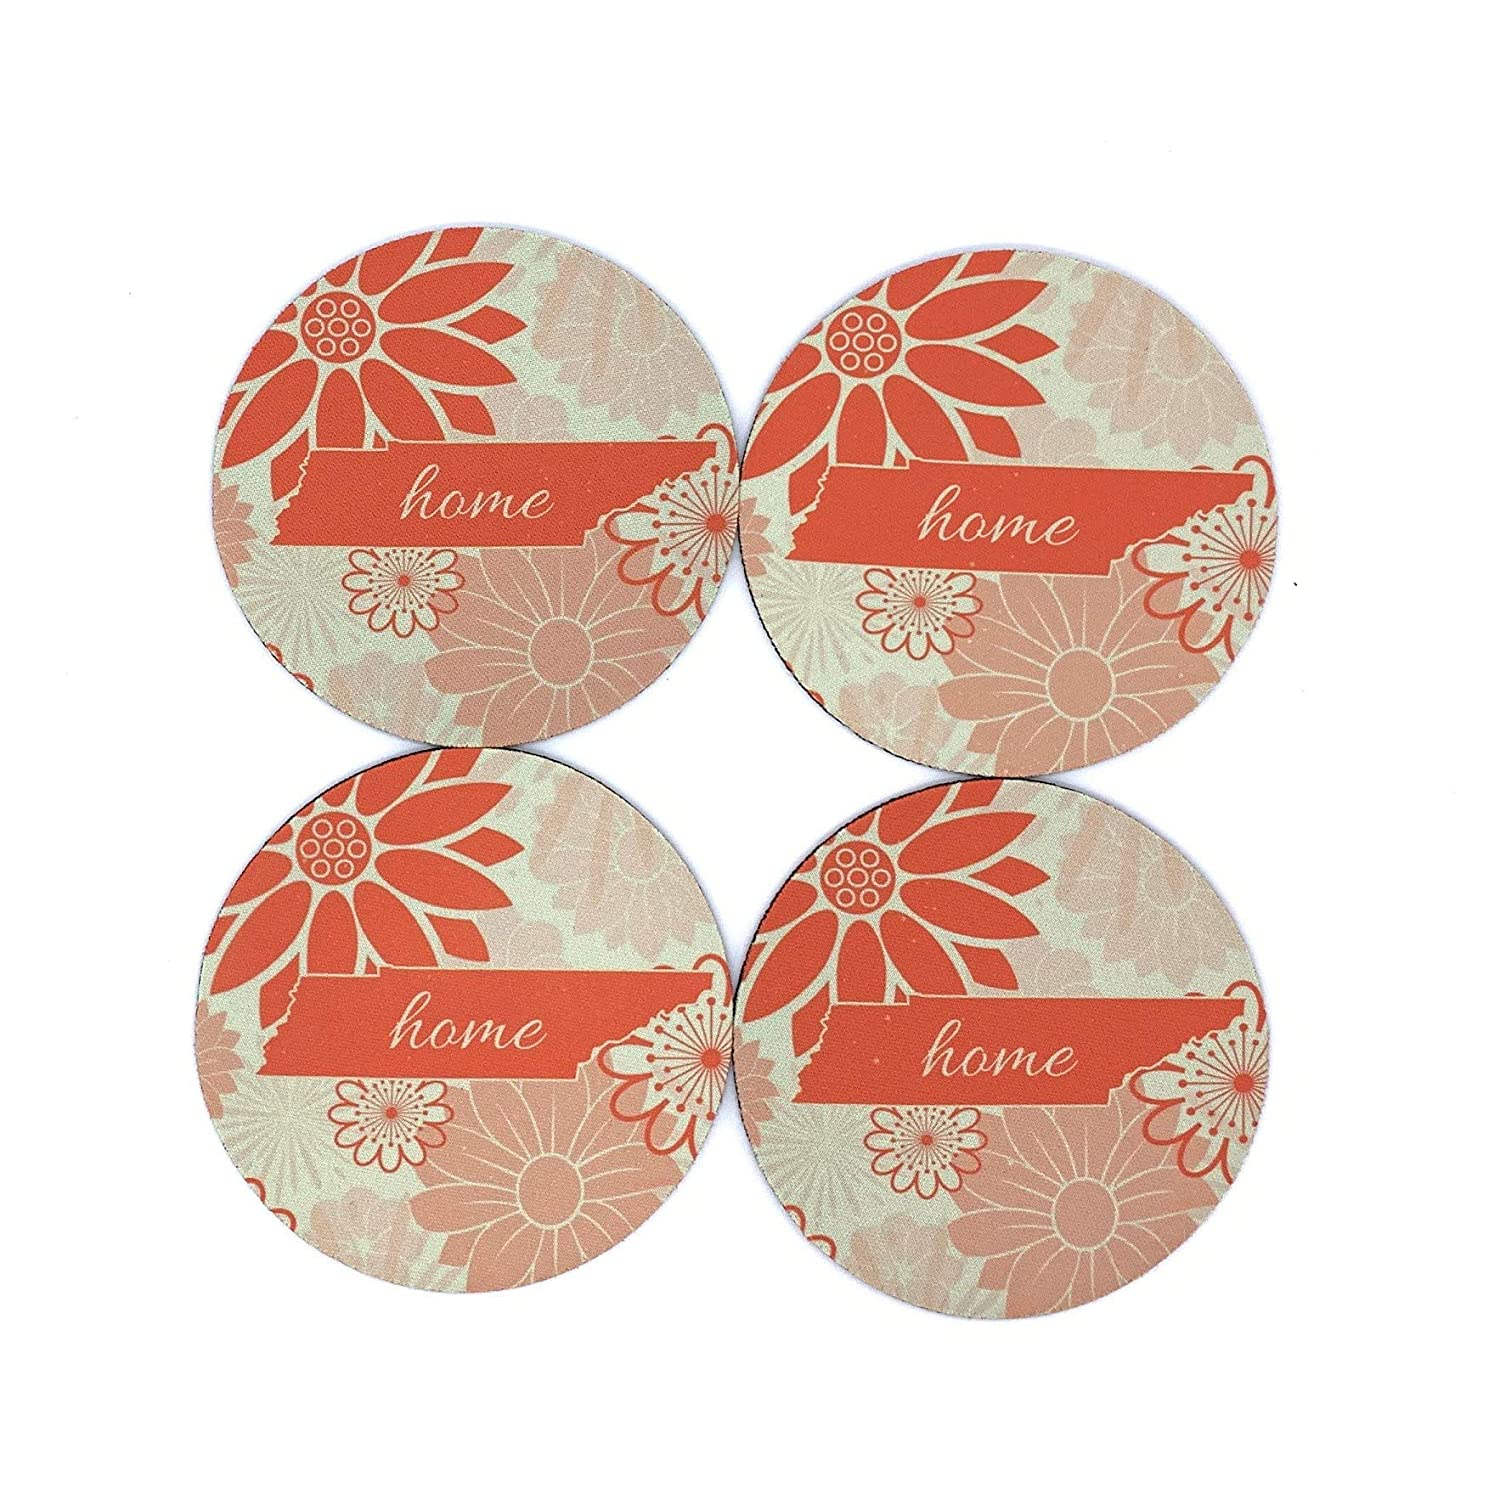 Tennessee State Silhouette Home Orange Beige Coasters Set of 4